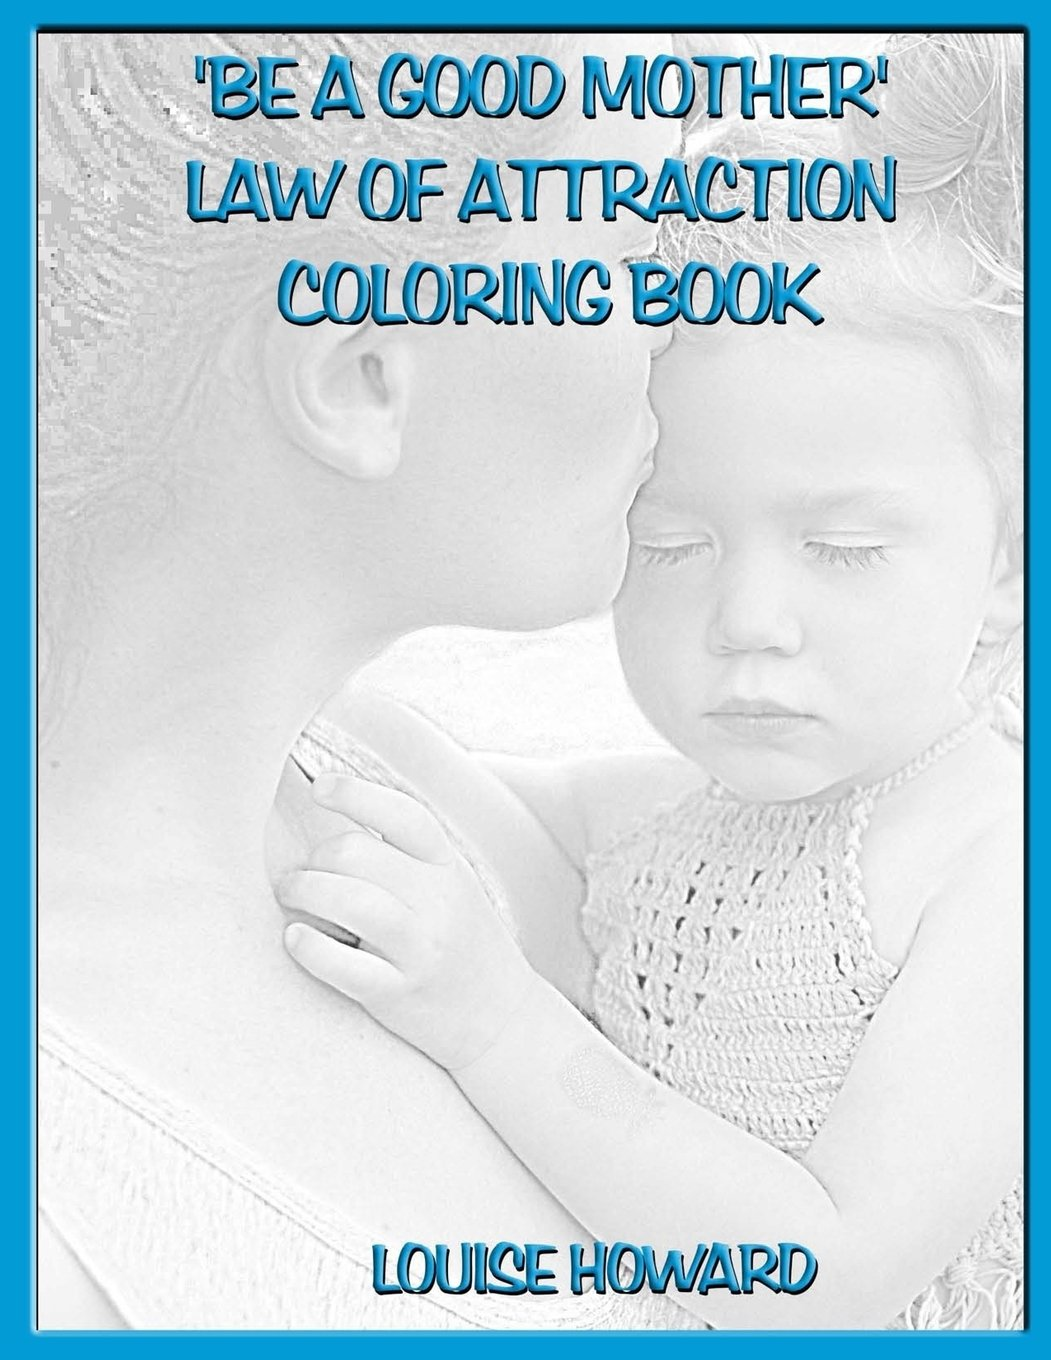 'Be a Good Mother' Law Of Attraction Coloring Book (Relationships & Happy Family Law of Attraction) (Volume 14) pdf epub